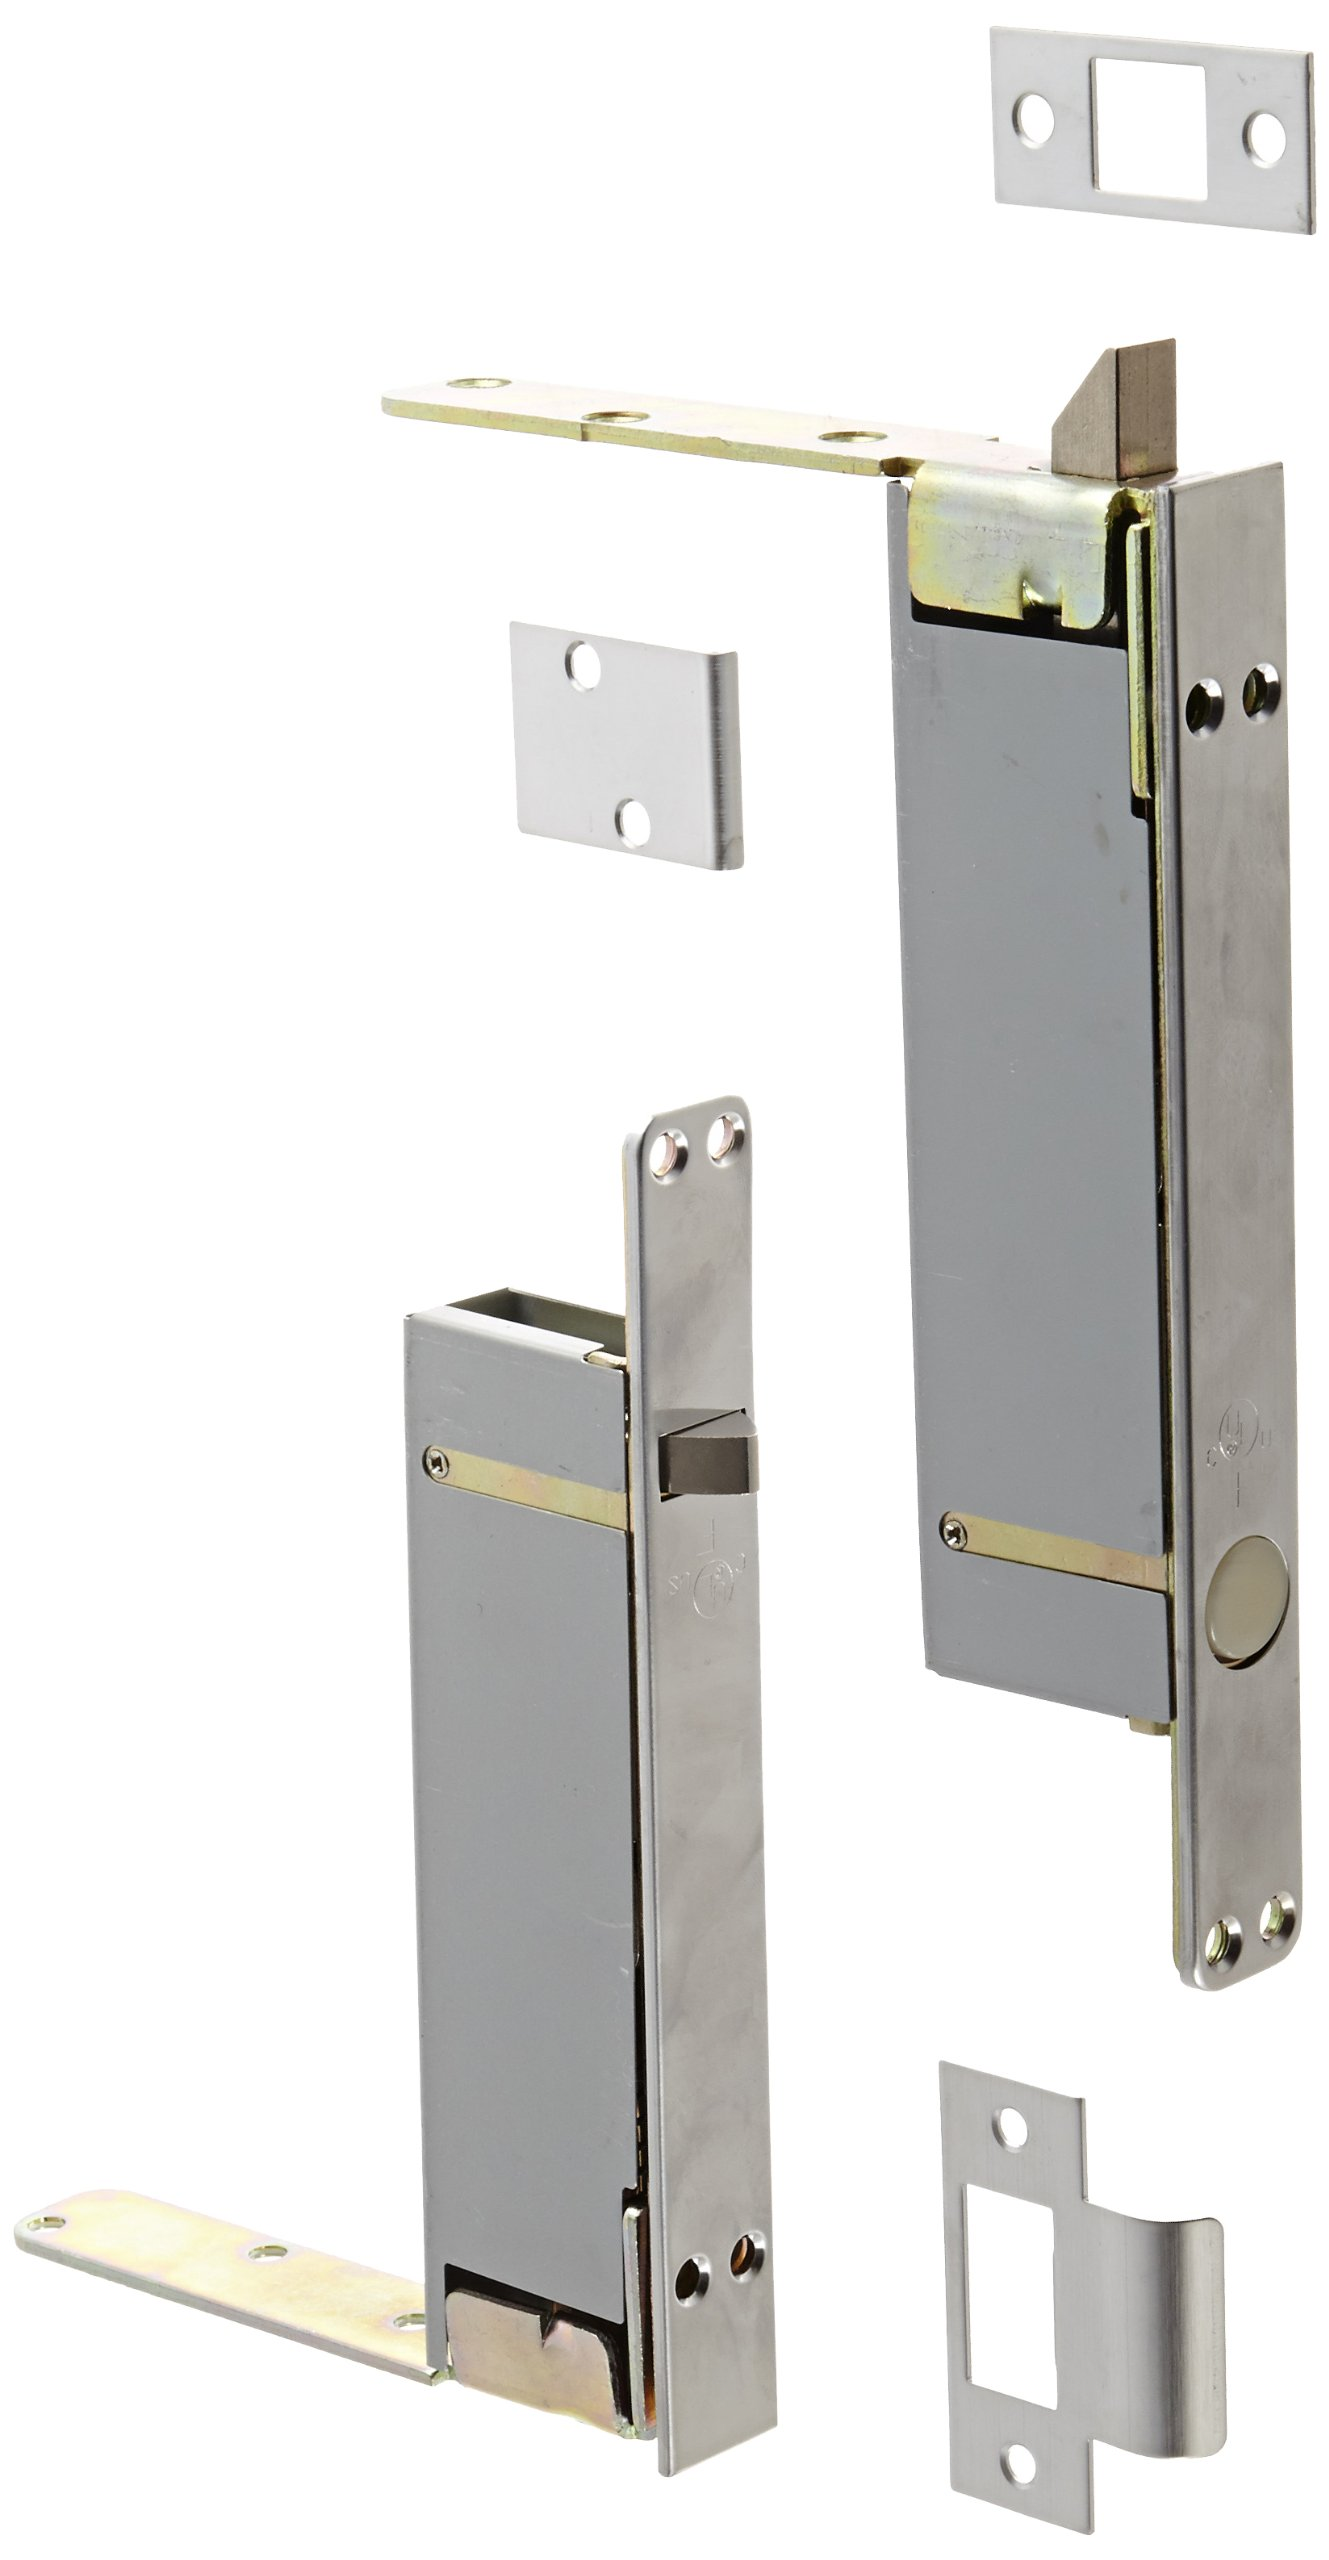 Rockwood 2945.26D Combination Flush Bolt Set for Wood or Plastic Covered Composite Type Fire Doors, 1'' Width x 8-1/2'' Height, Brass Satin Chrome Plated Finish